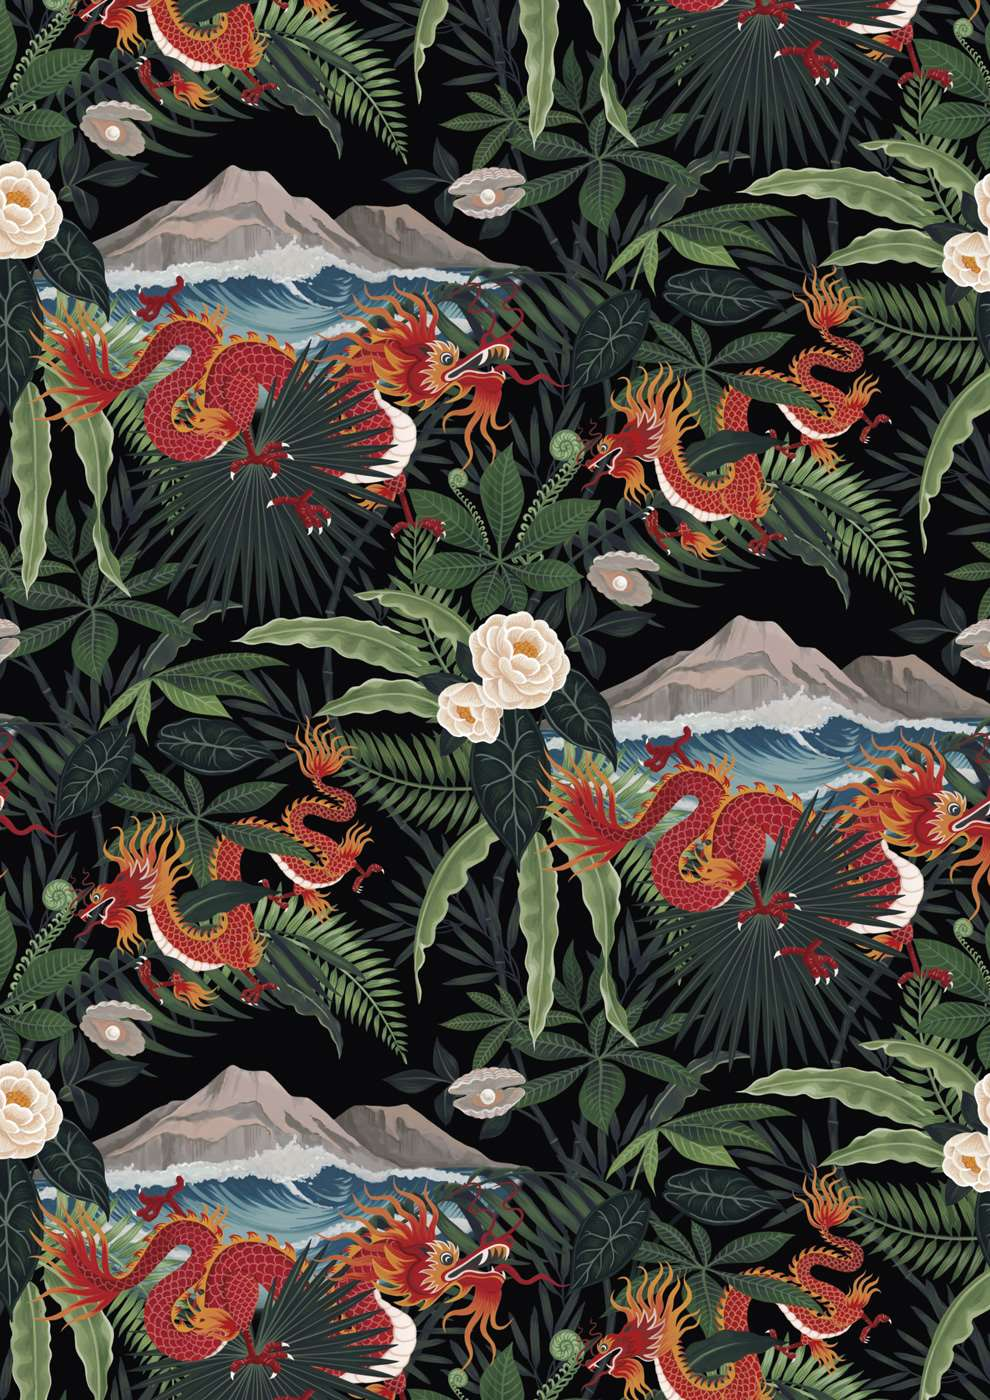 Charlotte Day, Botanical print with Chinese inspired dragon detail.